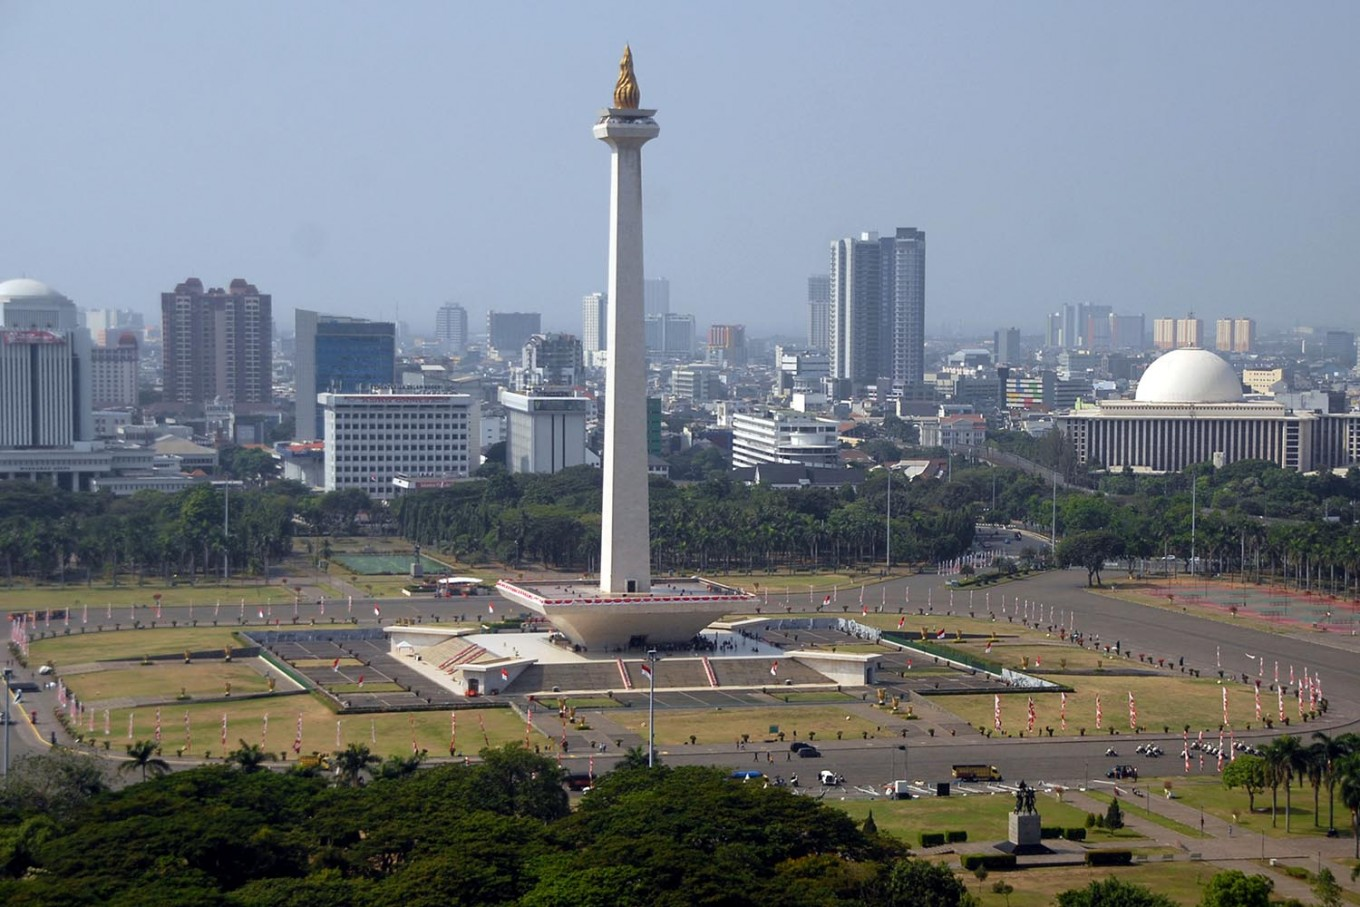 Several Jakarta roads closed as Islamic groups plan gathering